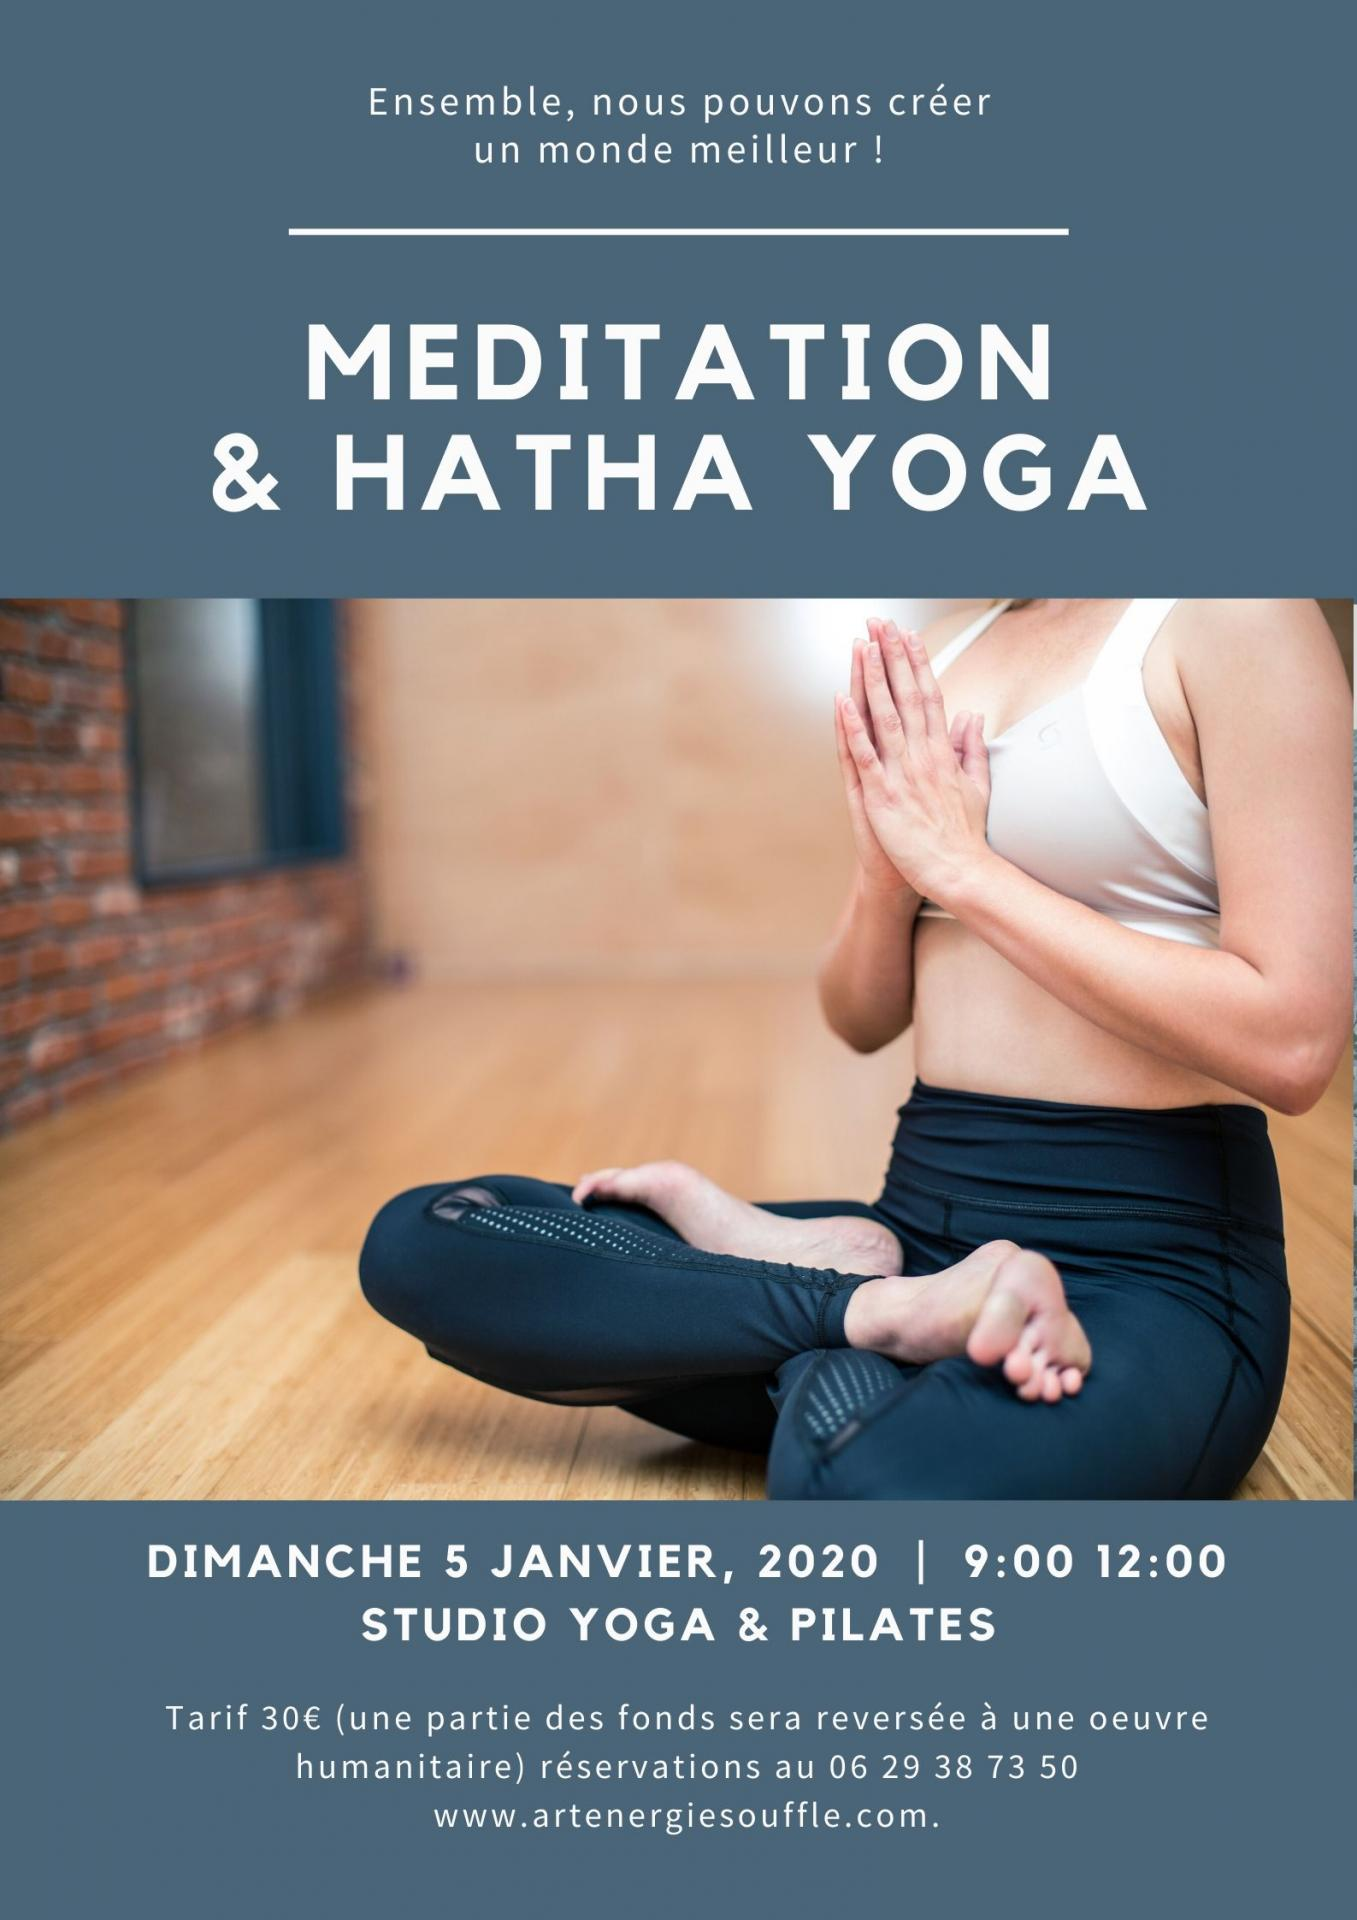 Meditation hatha yoga